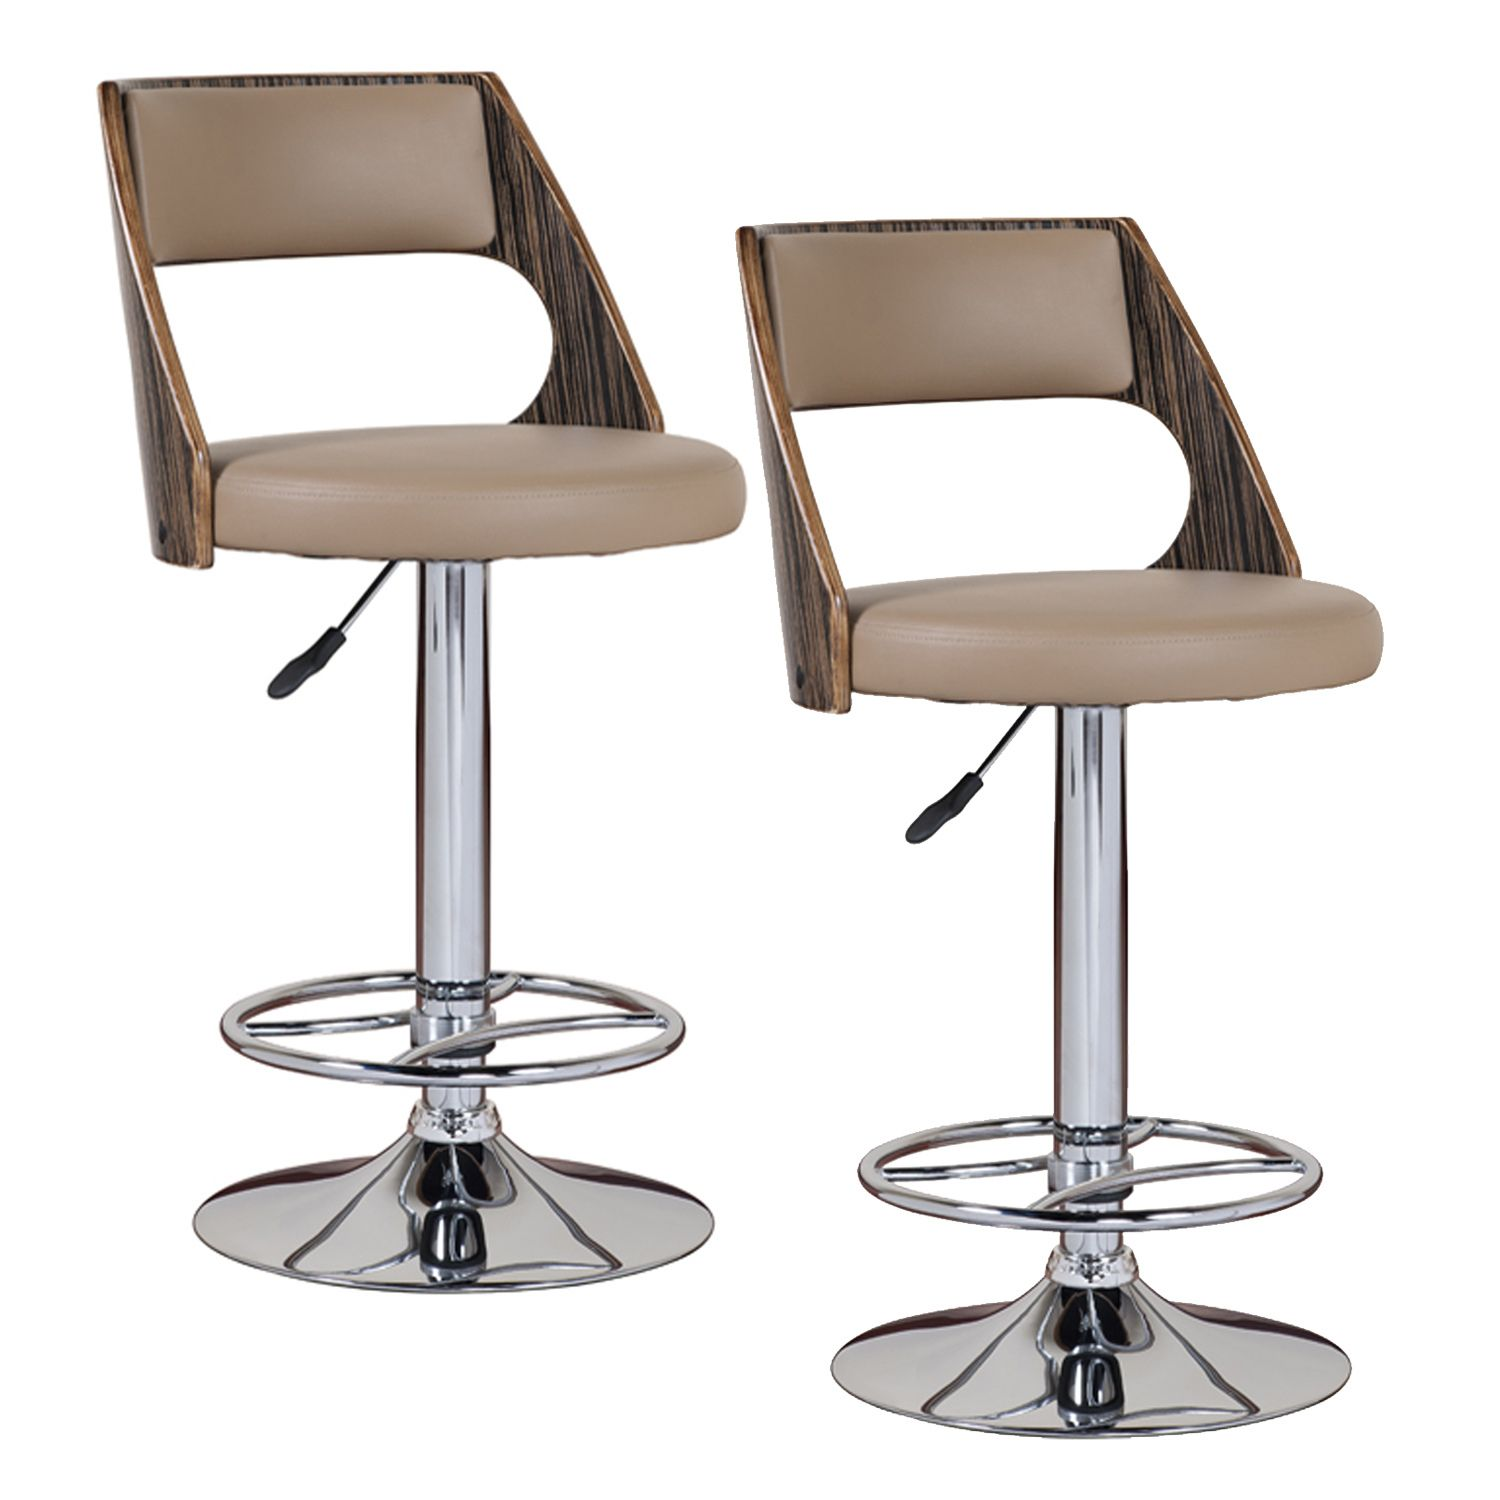 2019 Adjustable Height Bar Stools With Backs   Contemporary Modern  Furniture Check More At Http: